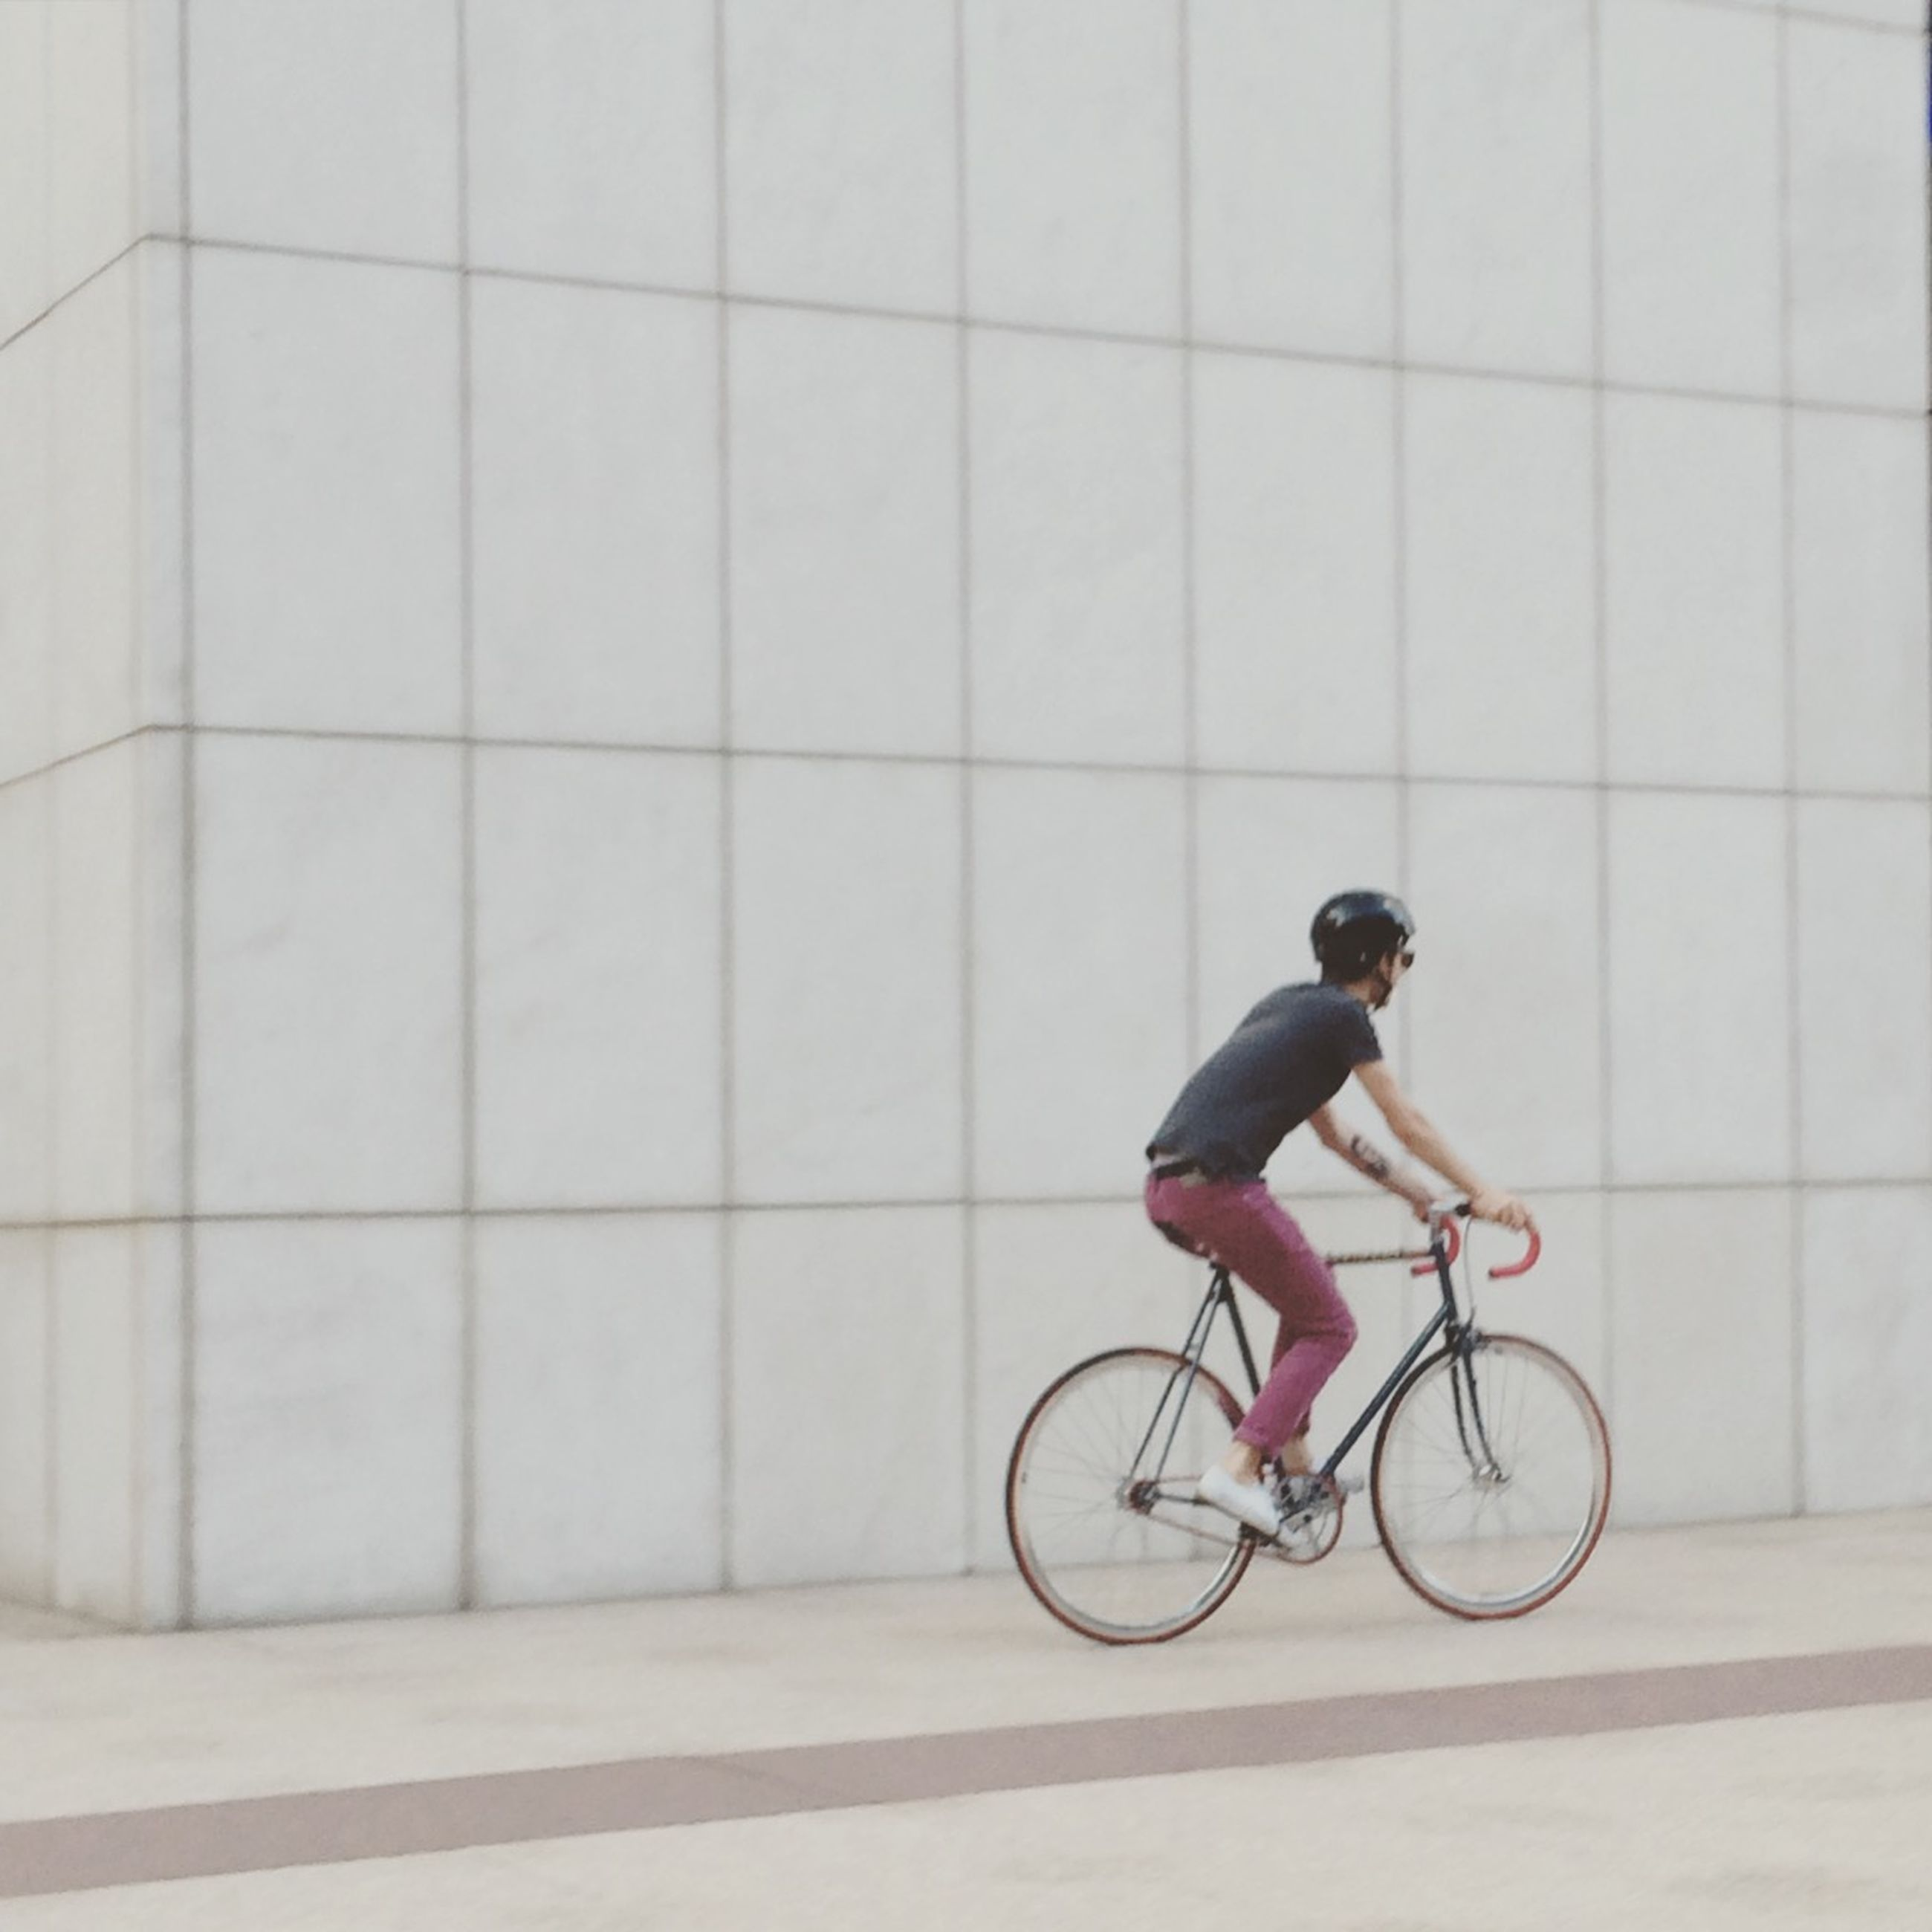 bicycle, full length, lifestyles, transportation, mode of transport, riding, men, leisure activity, land vehicle, side view, casual clothing, street, on the move, cycling, walking, healthy lifestyle, rear view, wall - building feature